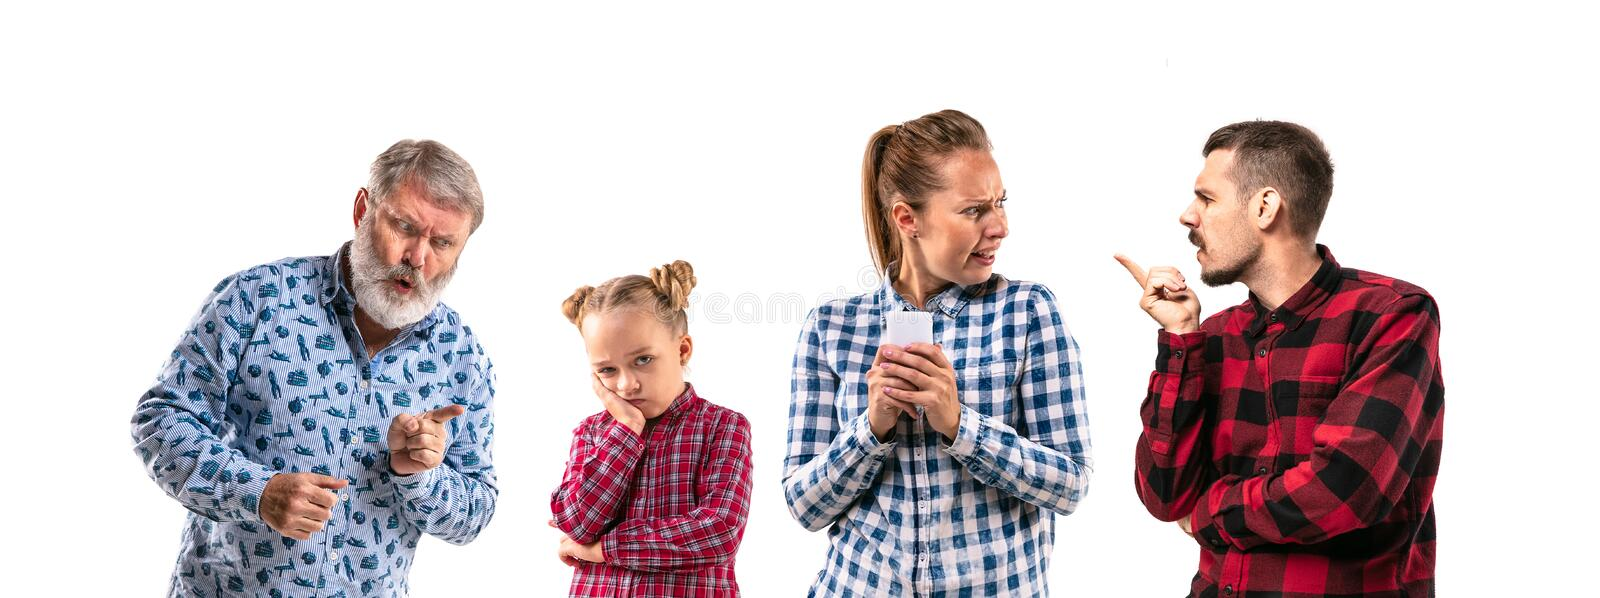 Family members arguing with one another on white studio background. royalty free stock photography